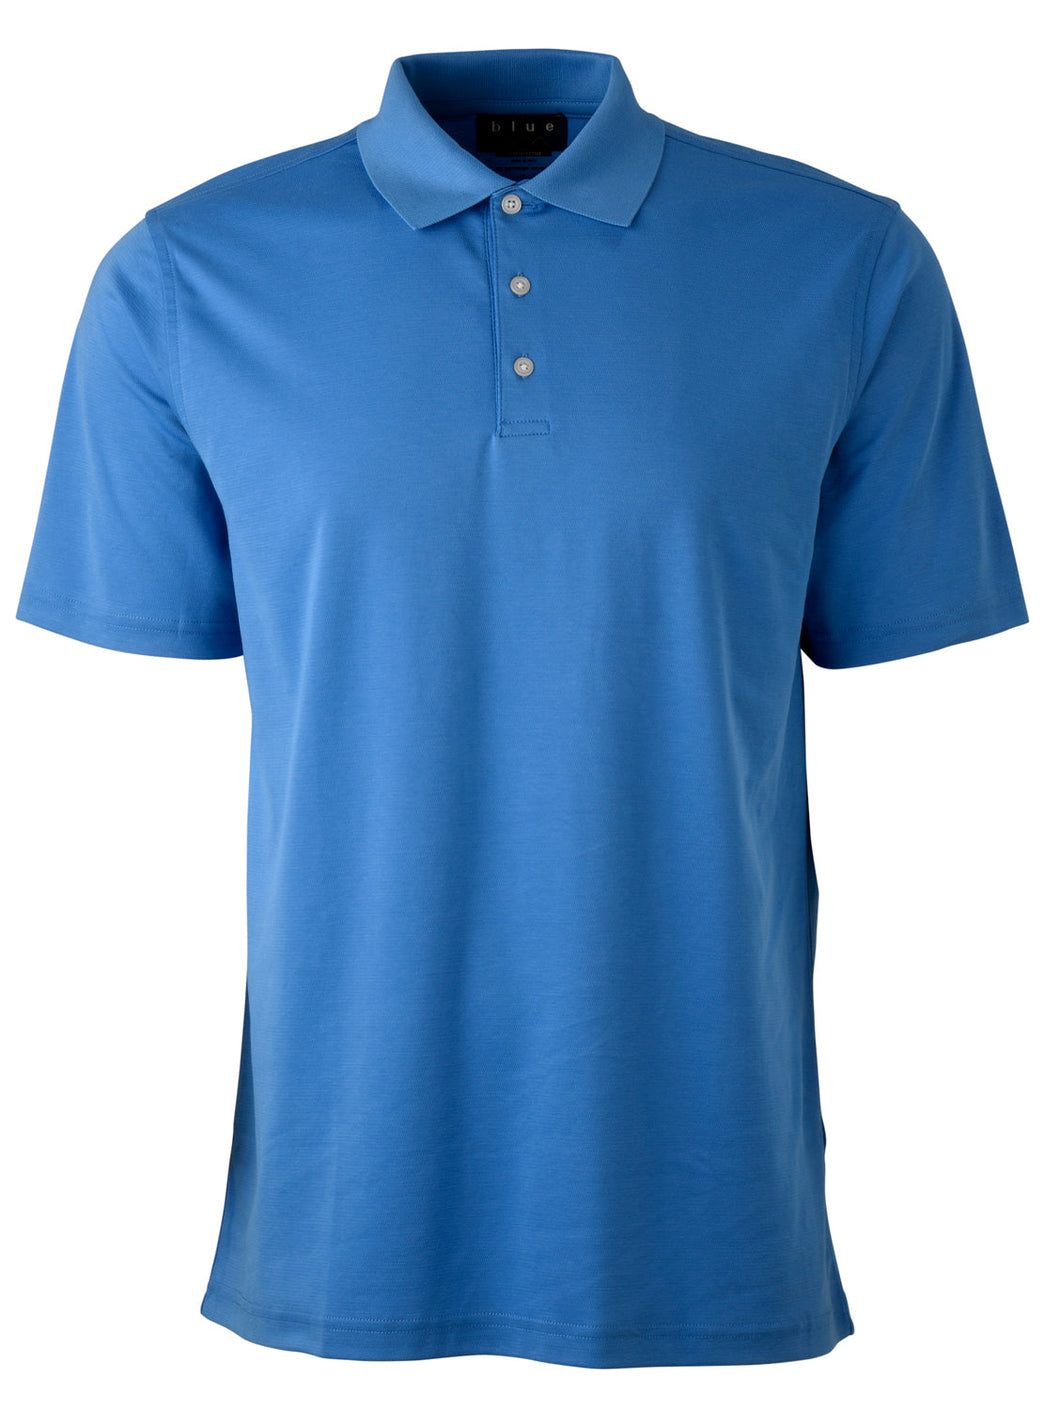 Men's Pima Cotton/Poly Performance Poloshirt